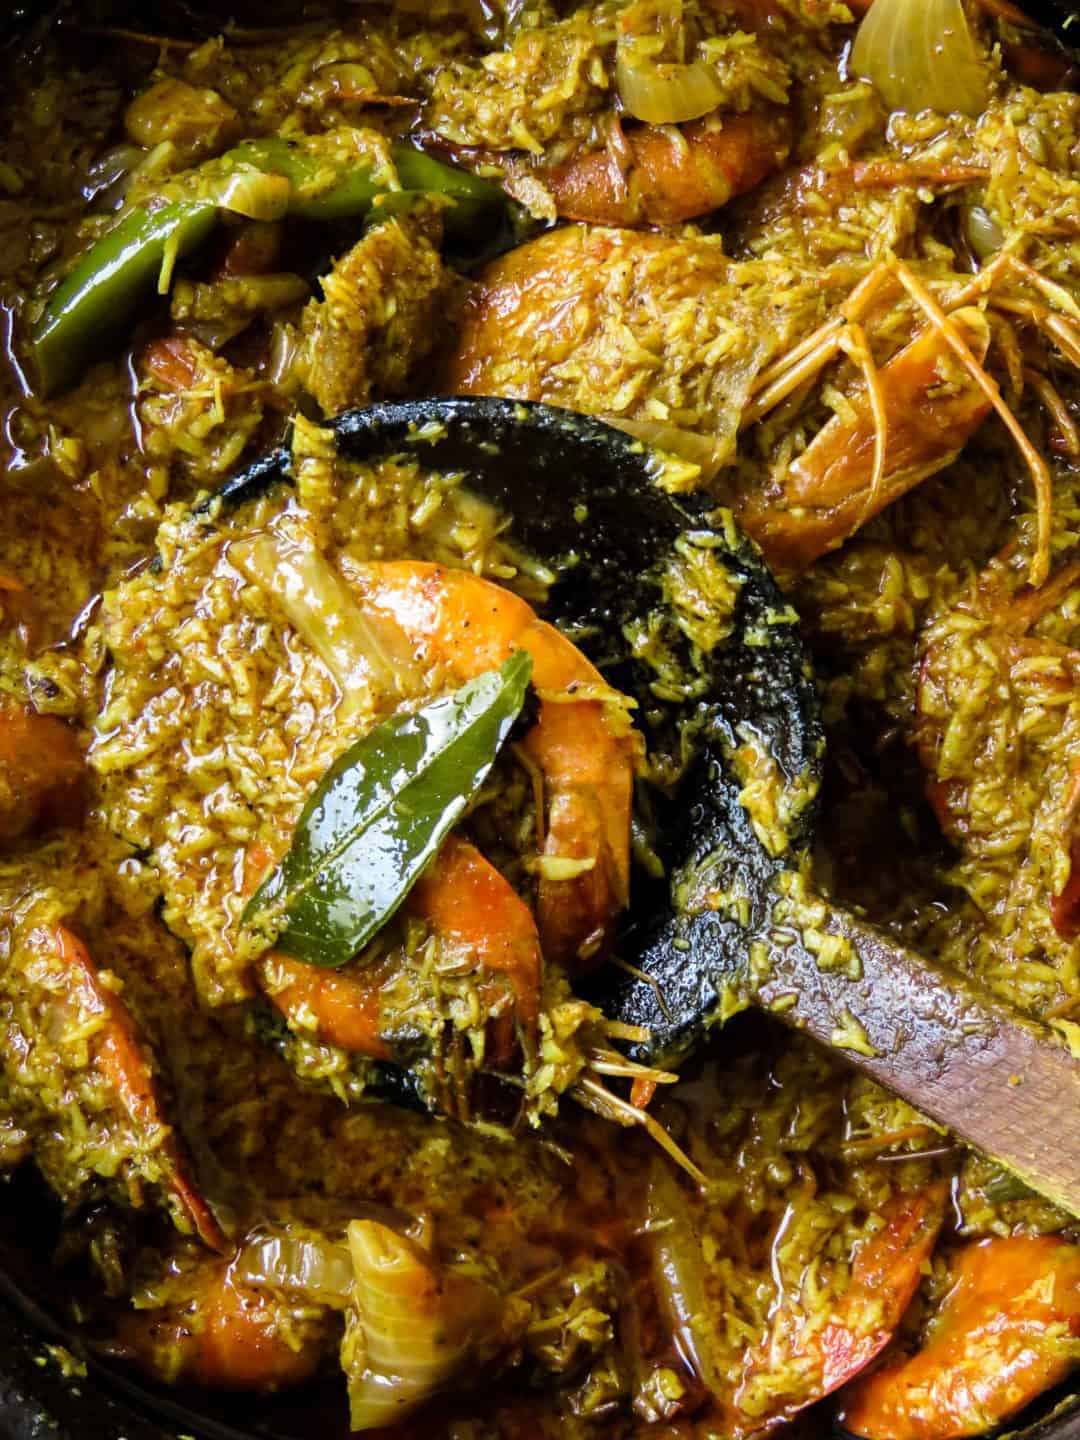 Sri Lankan coconut-prawn curry- delicious, tender prawns cooked to perfection in Sri Lankan spices and grated coconut to give extra flavor. It's an example of simple ingredients coming together to make your taste buds tingle.